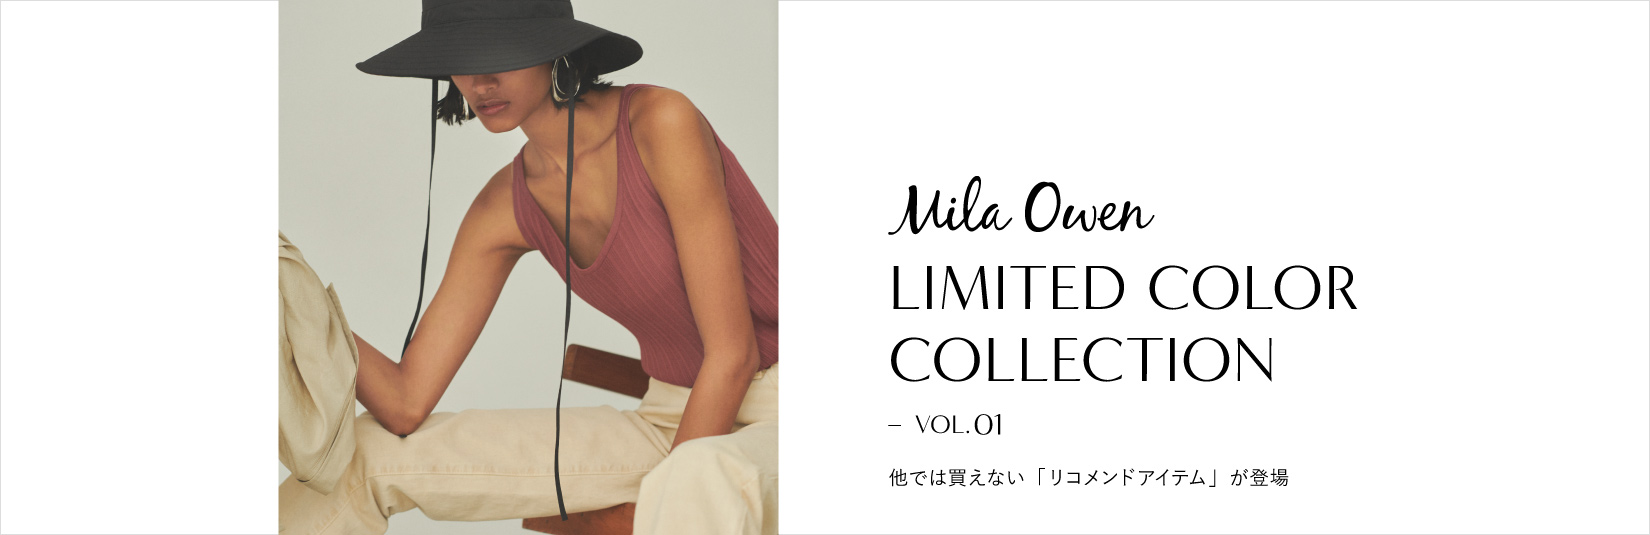 Mila Owen LIMITED COLOR COLLECTION